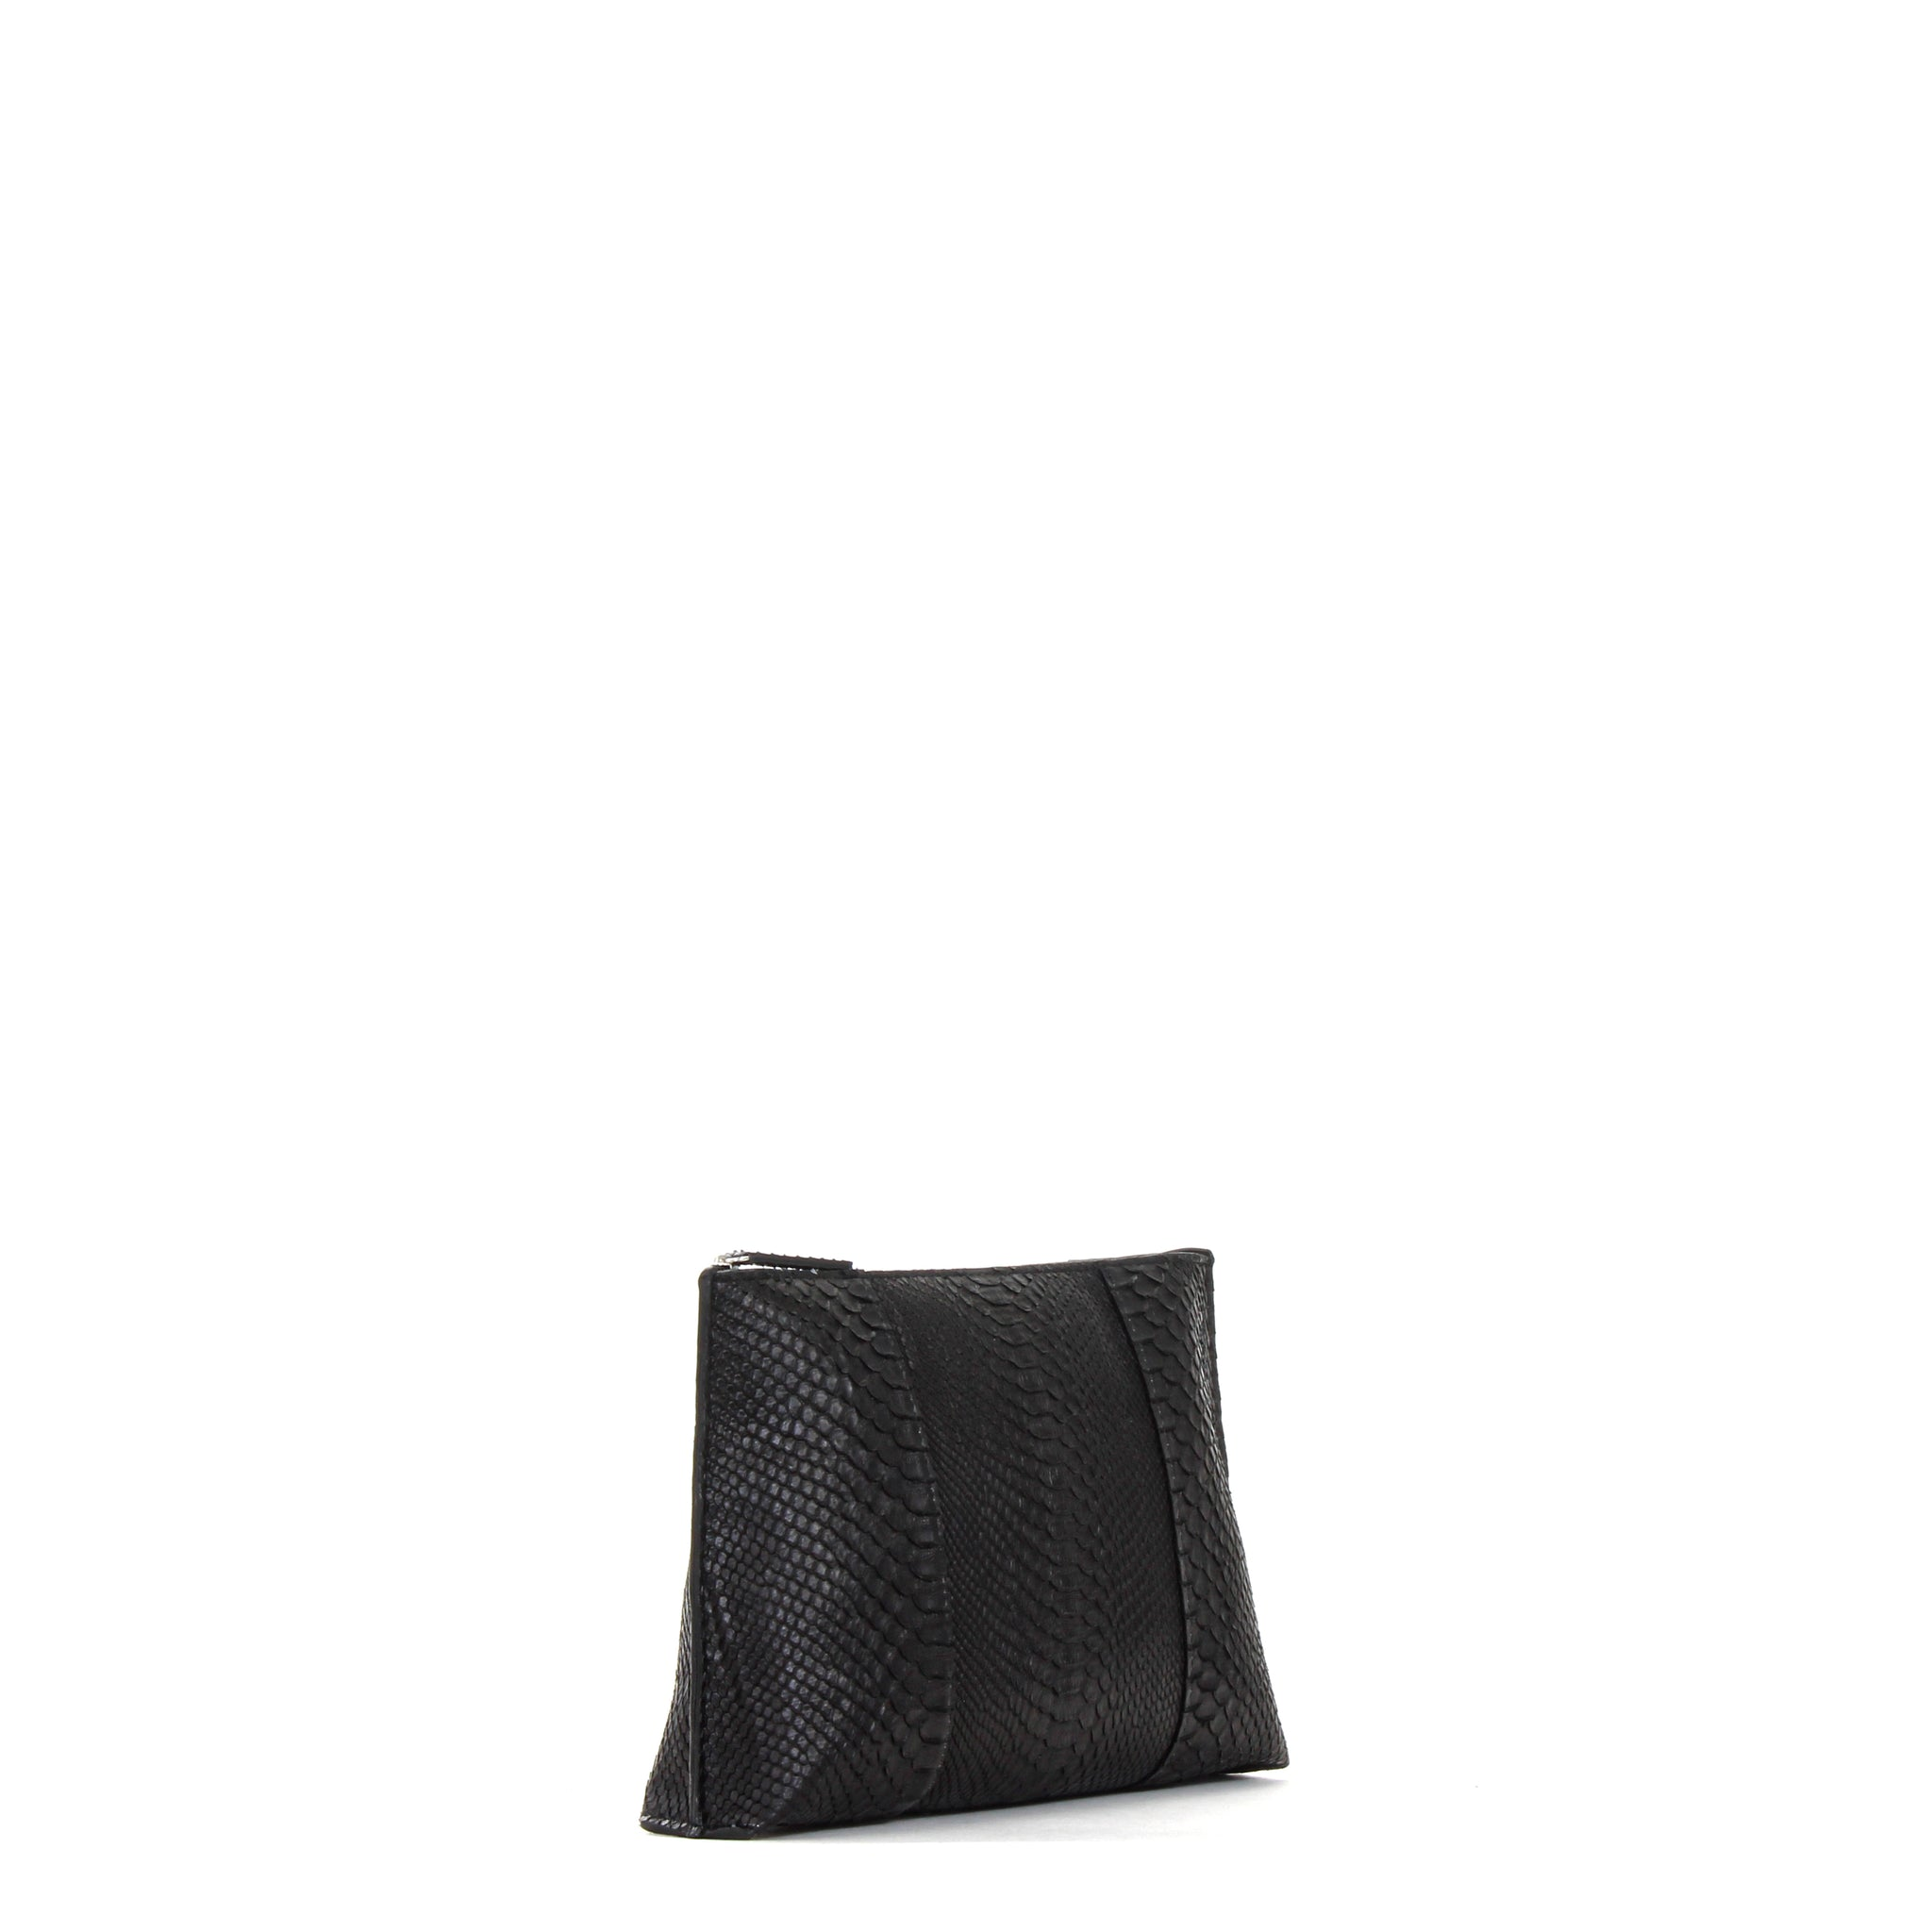 EVERYDAY POUCH BLACK PYTHON